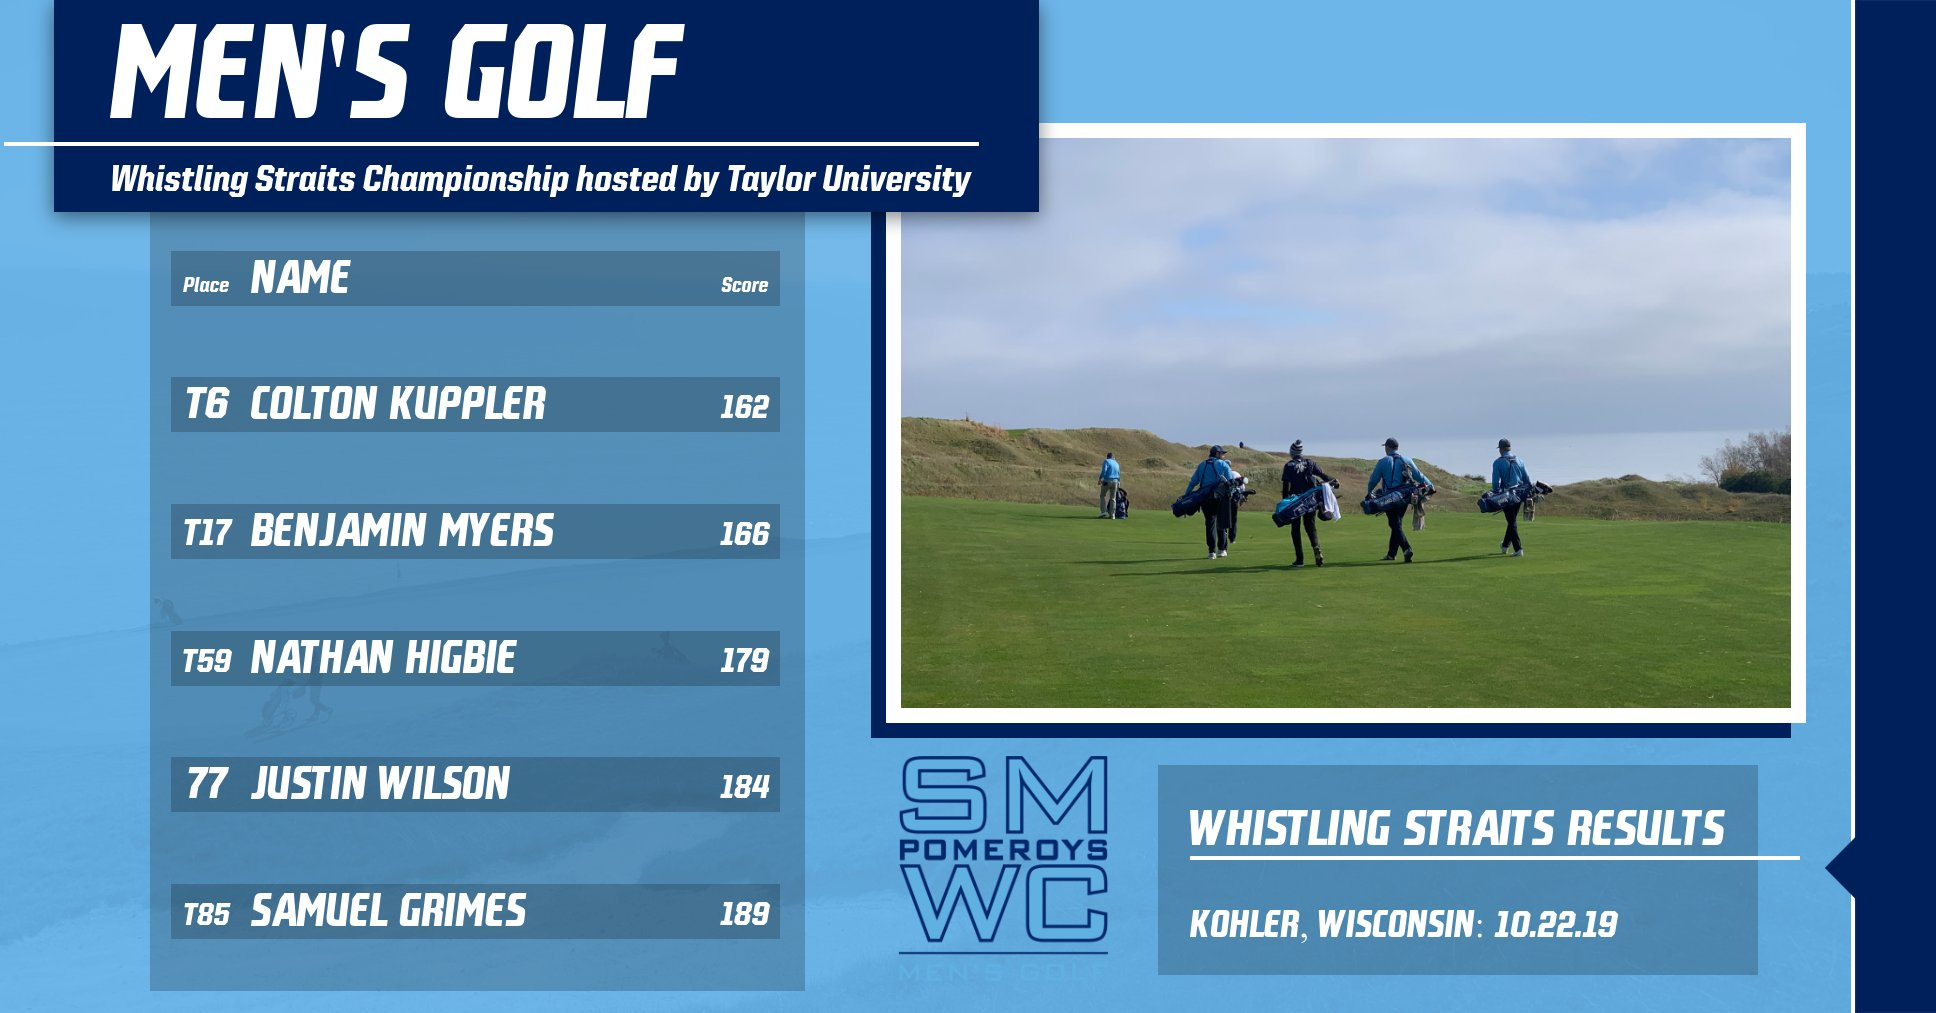 Men's Golf Ties for 10th Place at Whistling Straits; Kuppler Secures Sixth Place Finish